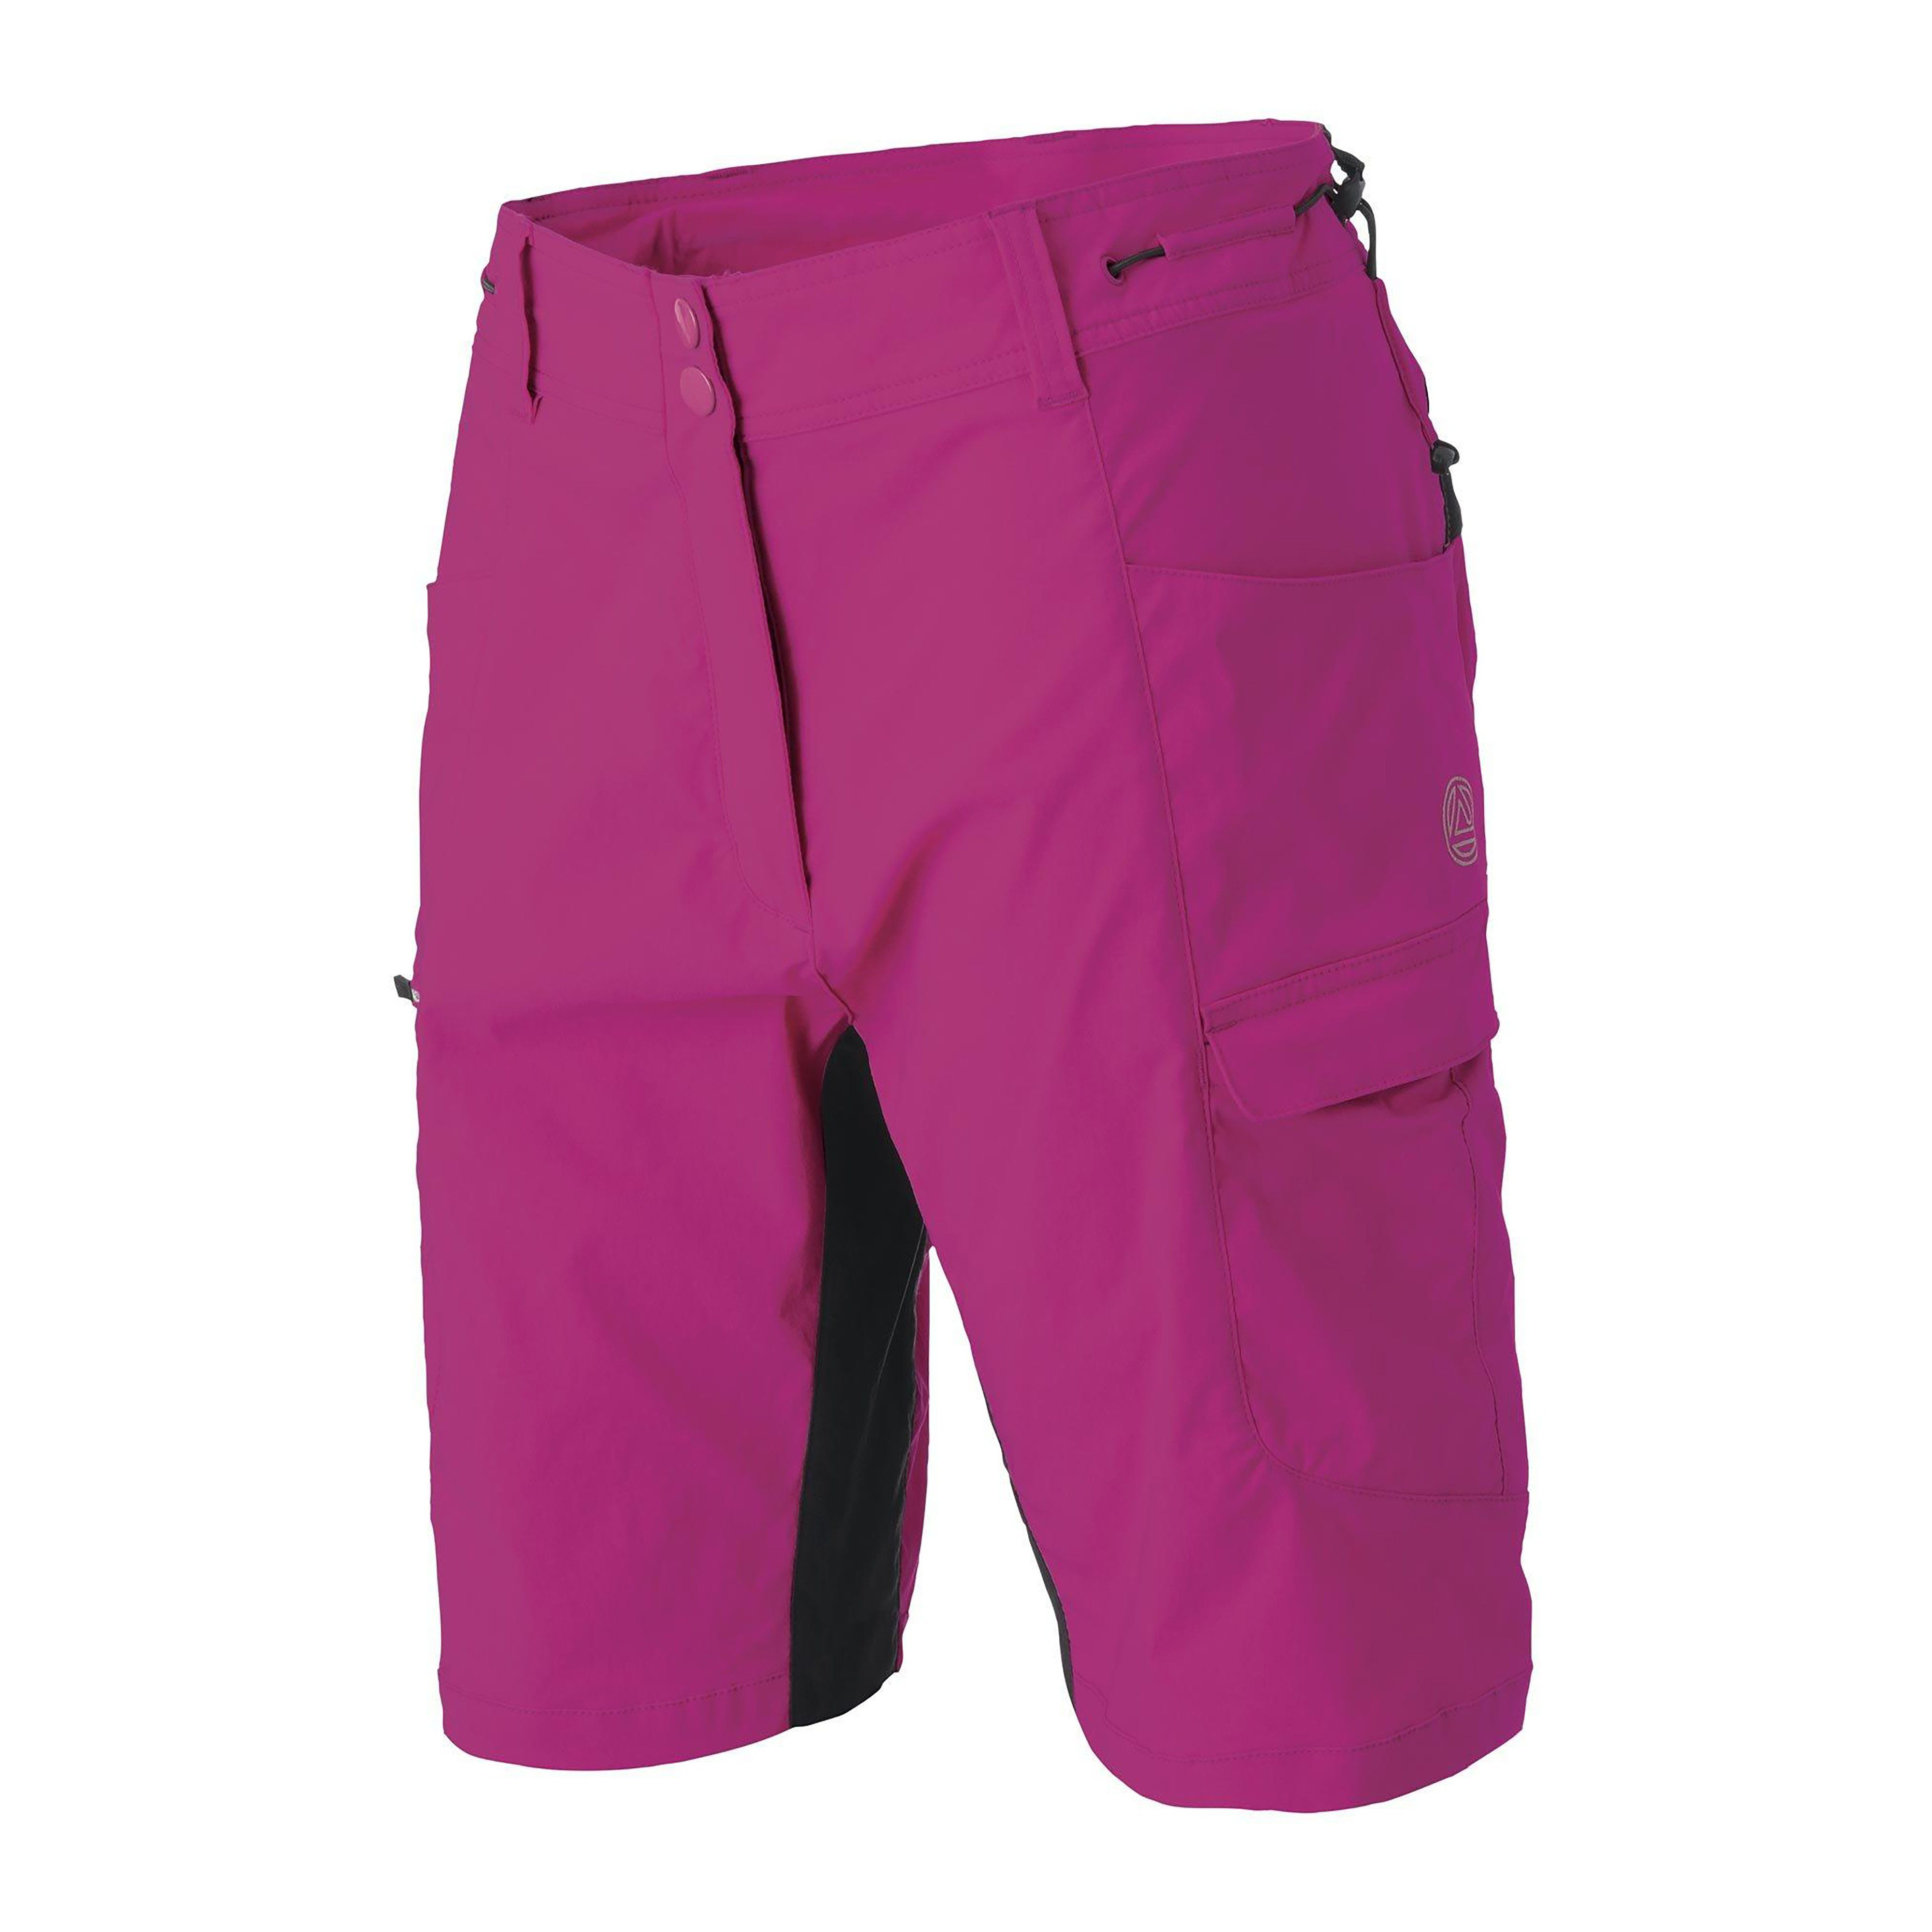 DARE 2B Women's Interchange Convertible Shorts